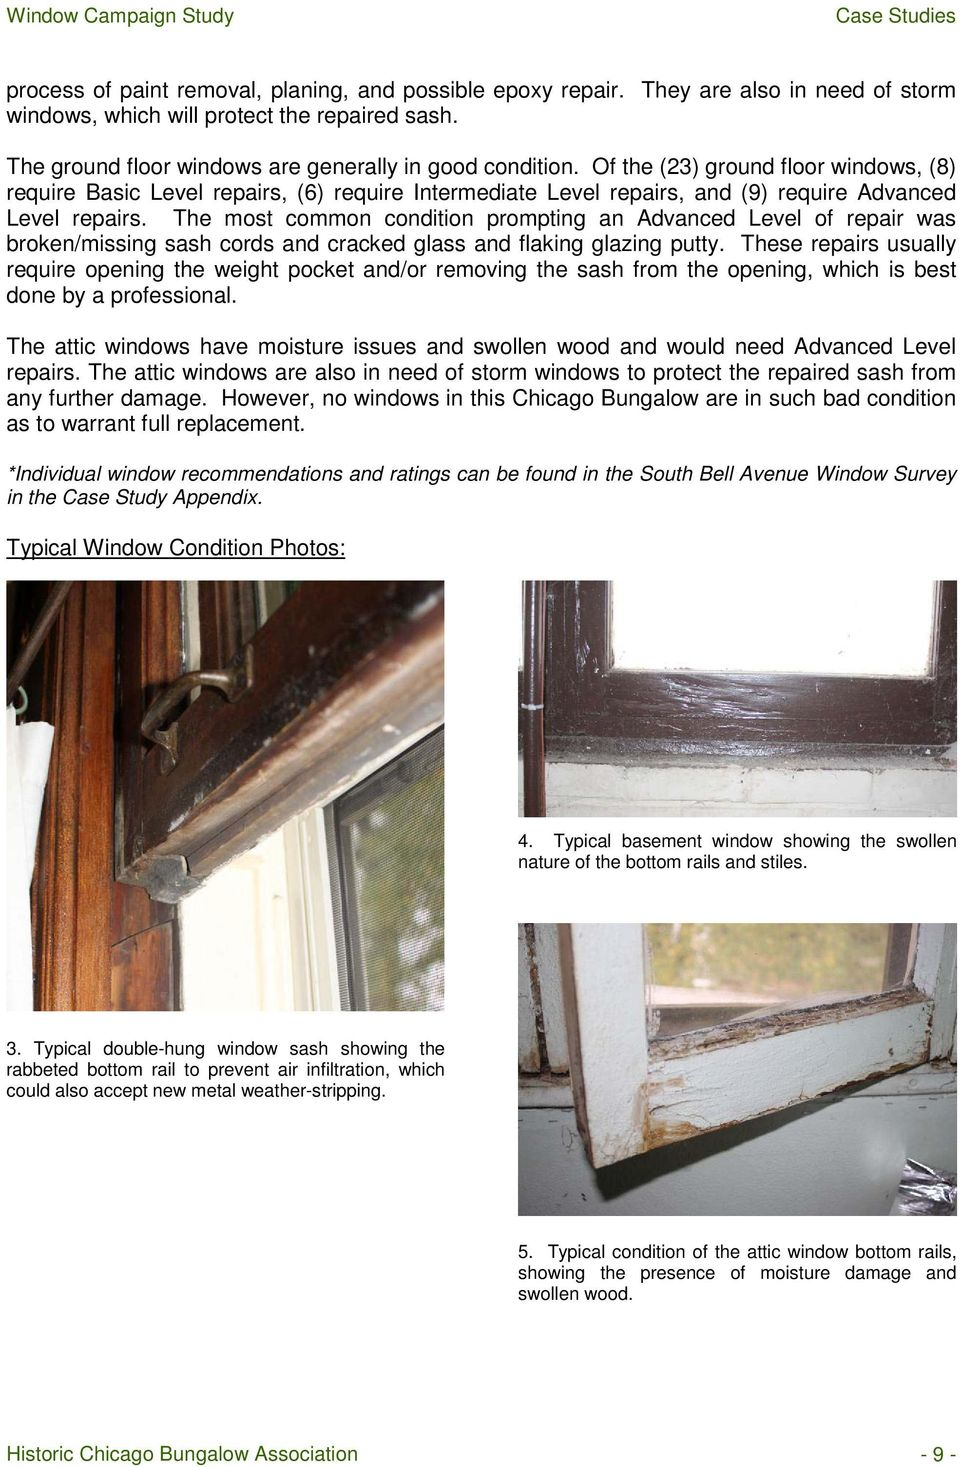 The most common condition prompting an Advanced Level of repair was broken/missing sash cords and cracked glass and flaking glazing putty.